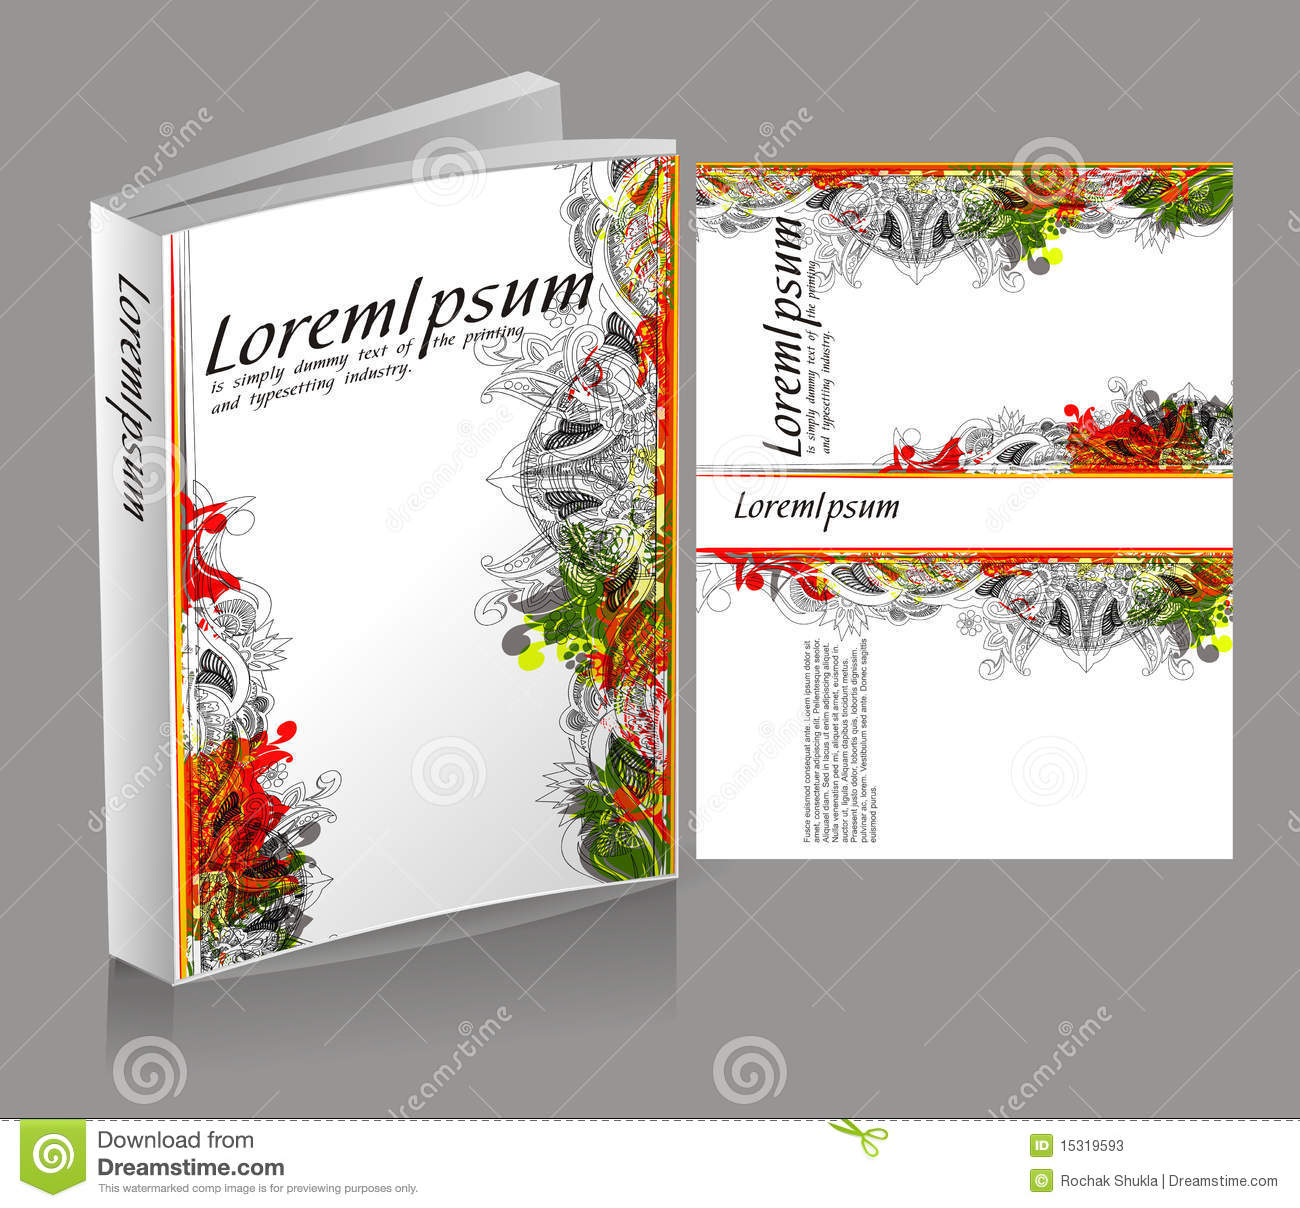 Design A Cookbook Cover For Free : Book cover design stock vector image of closed modern